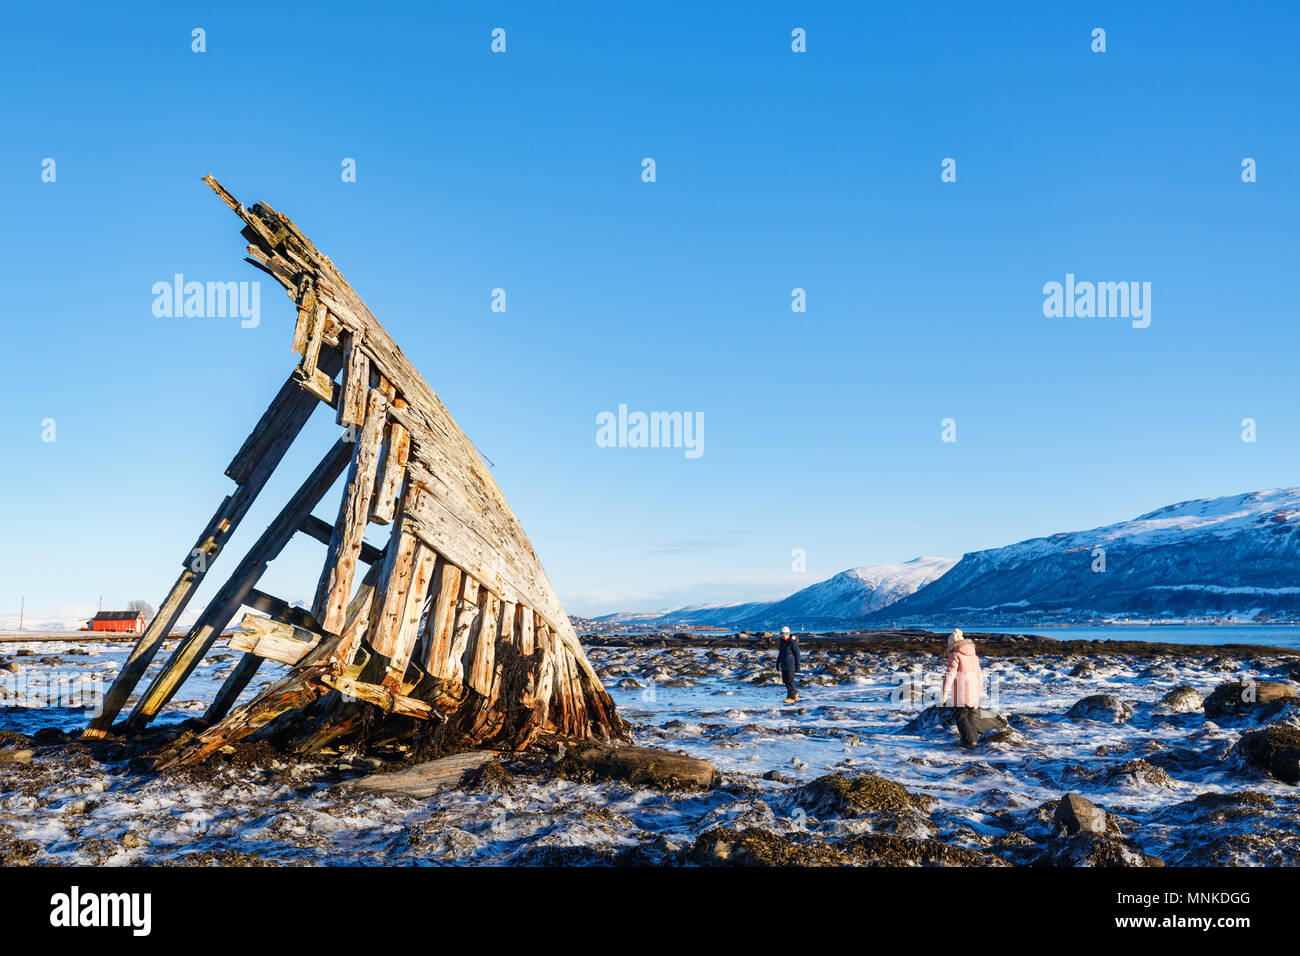 Kids exploring shipwrecked wooden viking boat in Northern Norway - Stock Image